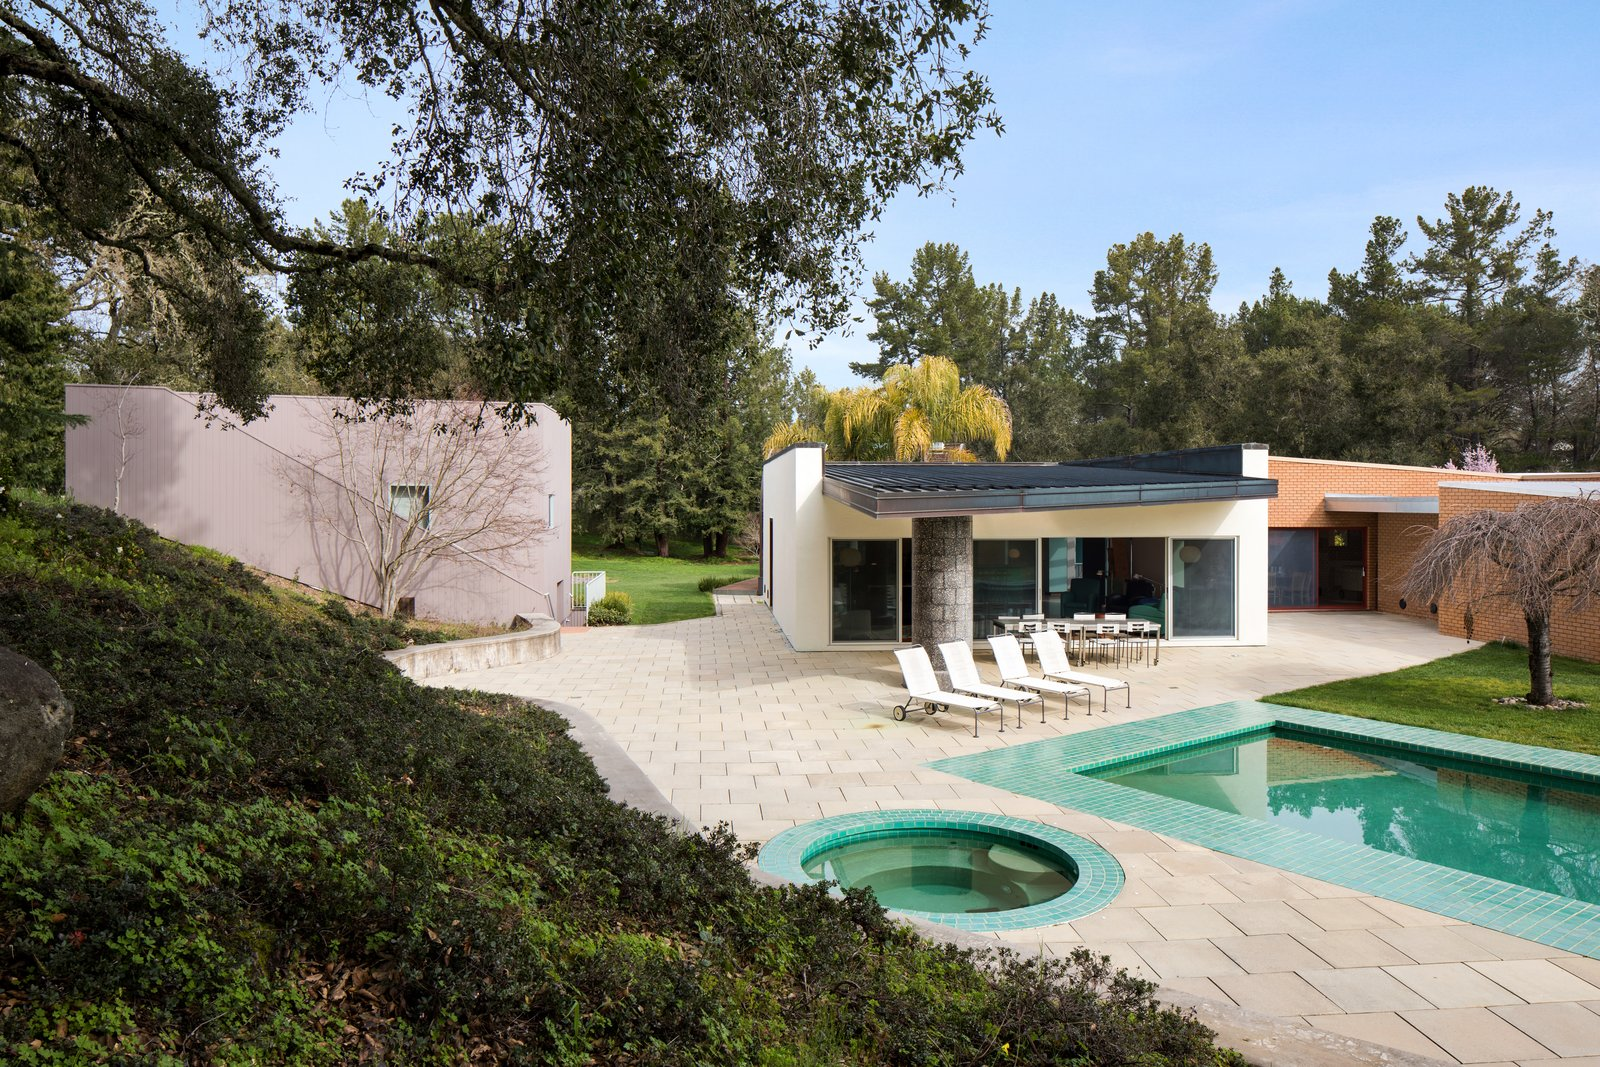 The pool and outdoor hot tub bounce green light off the roof hanging over the back terrace, creating a lush environment.  Photo 10 of 12 in IDEO Founder David Kelley Asks $13.5M For His Ettore Sottsass-Designed Masterpiece